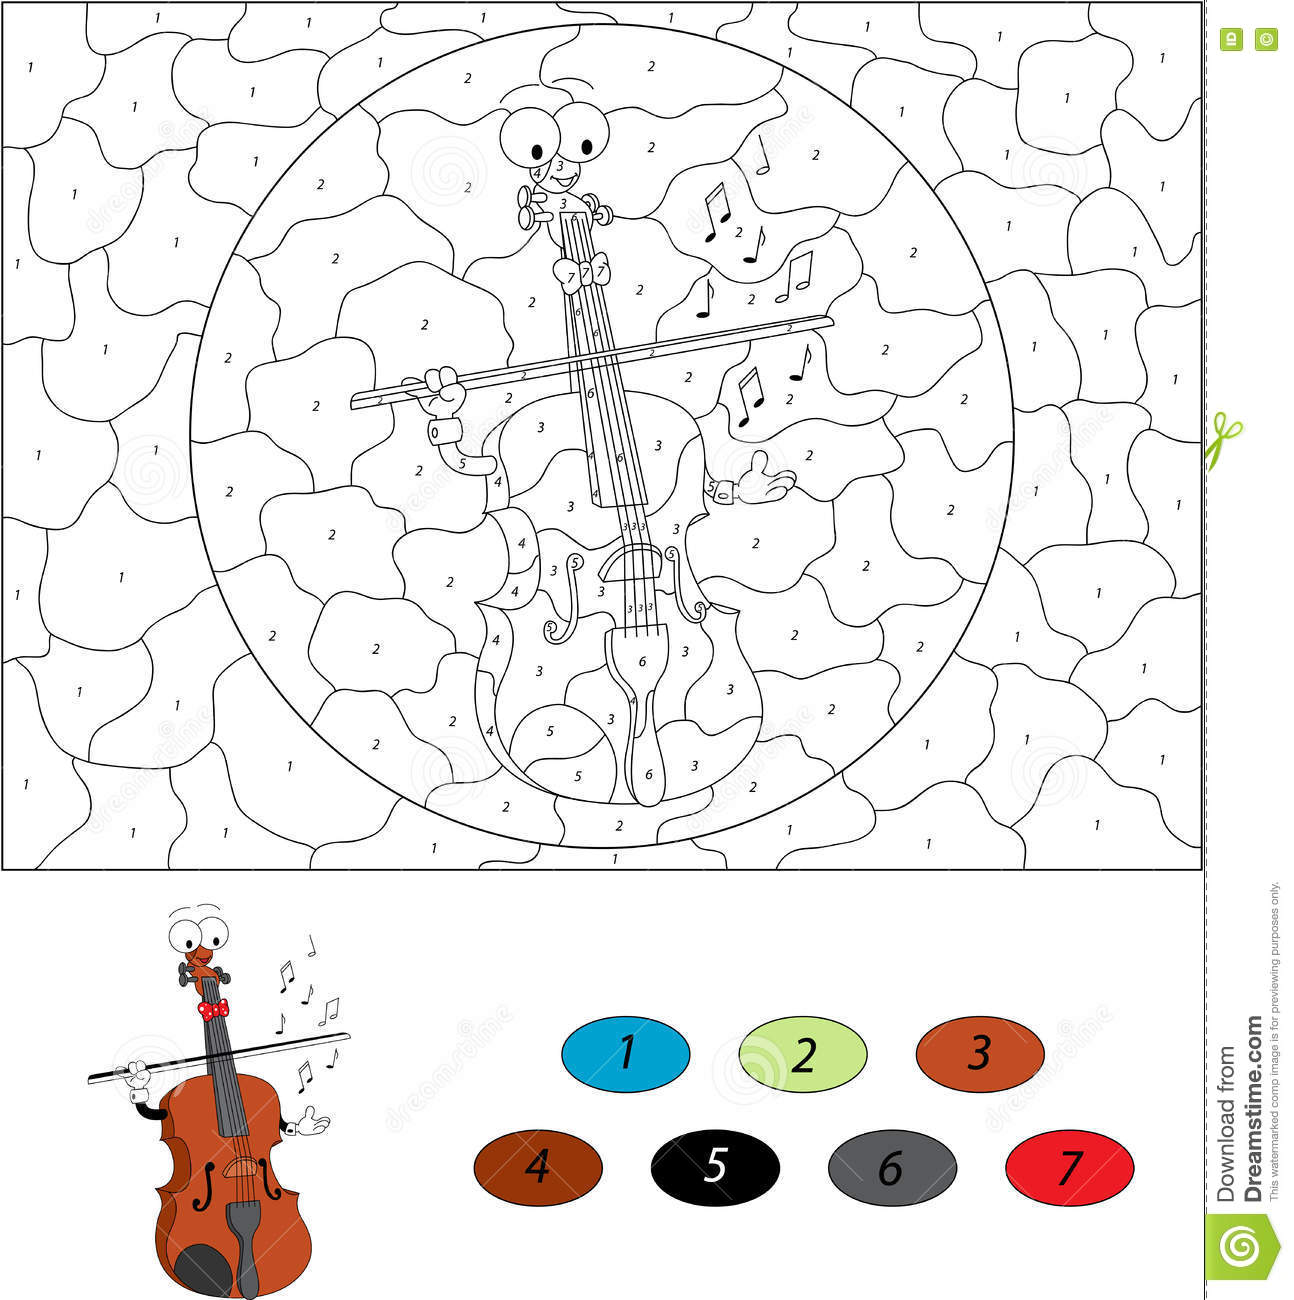 cartoon funny violin color by number educational game for kids